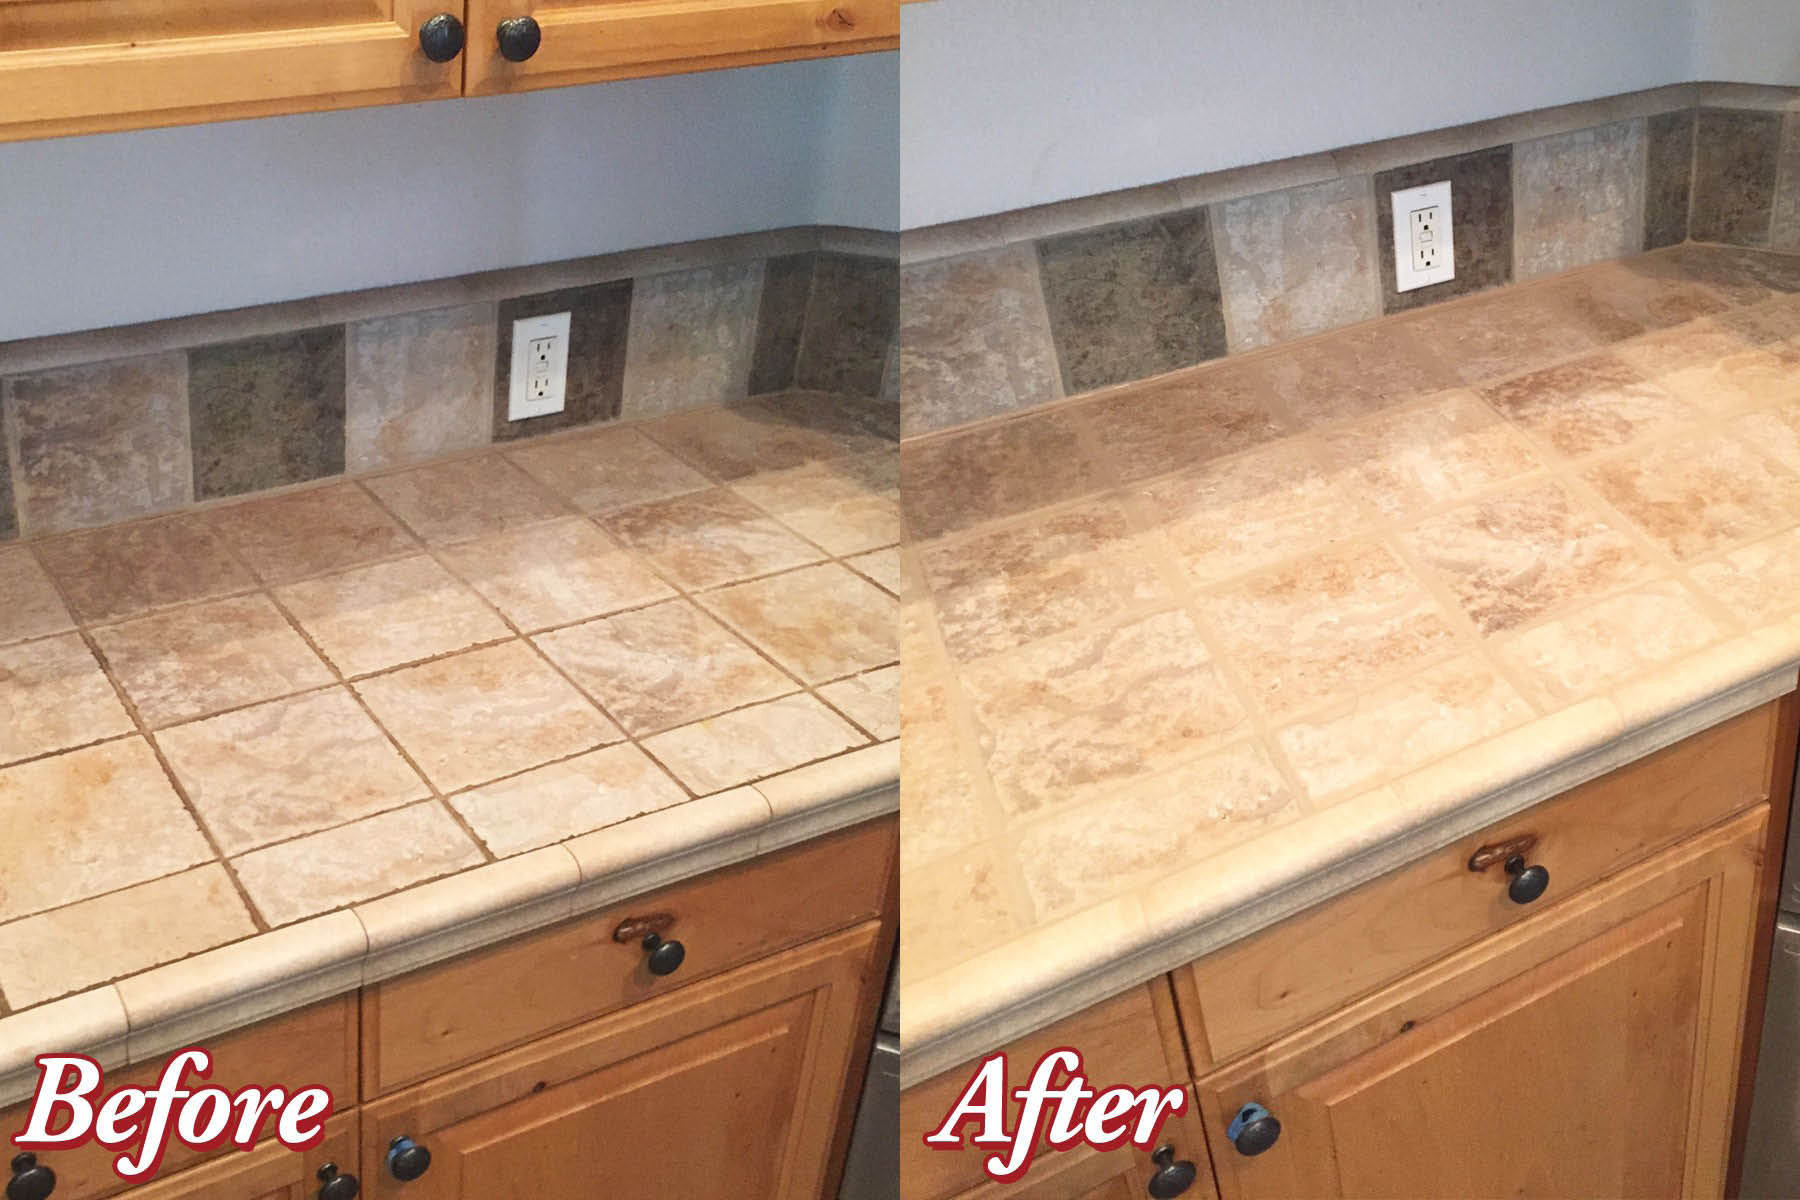 Before And After Counter Top Cleaning And Sealing In Boise, Garden City, Eagle, Meridian, Kuna, Nampa And Caldwell.